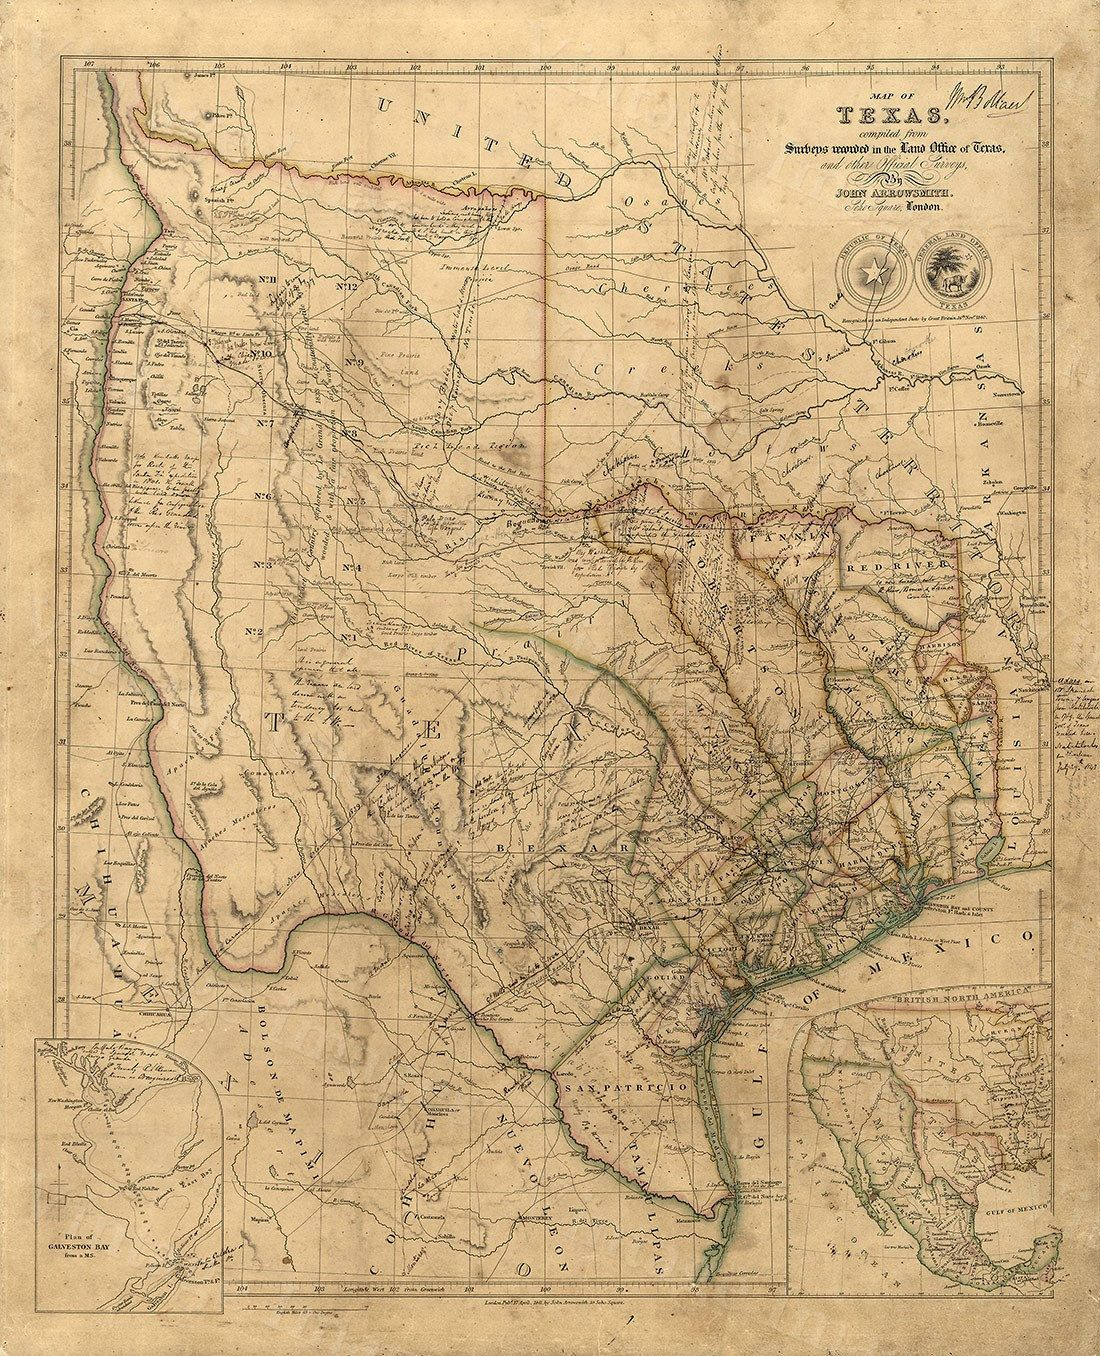 Old Texas Wall Map 1841 Historical Texas Map Antique Decorator Style - Vintage Texas Map Prints